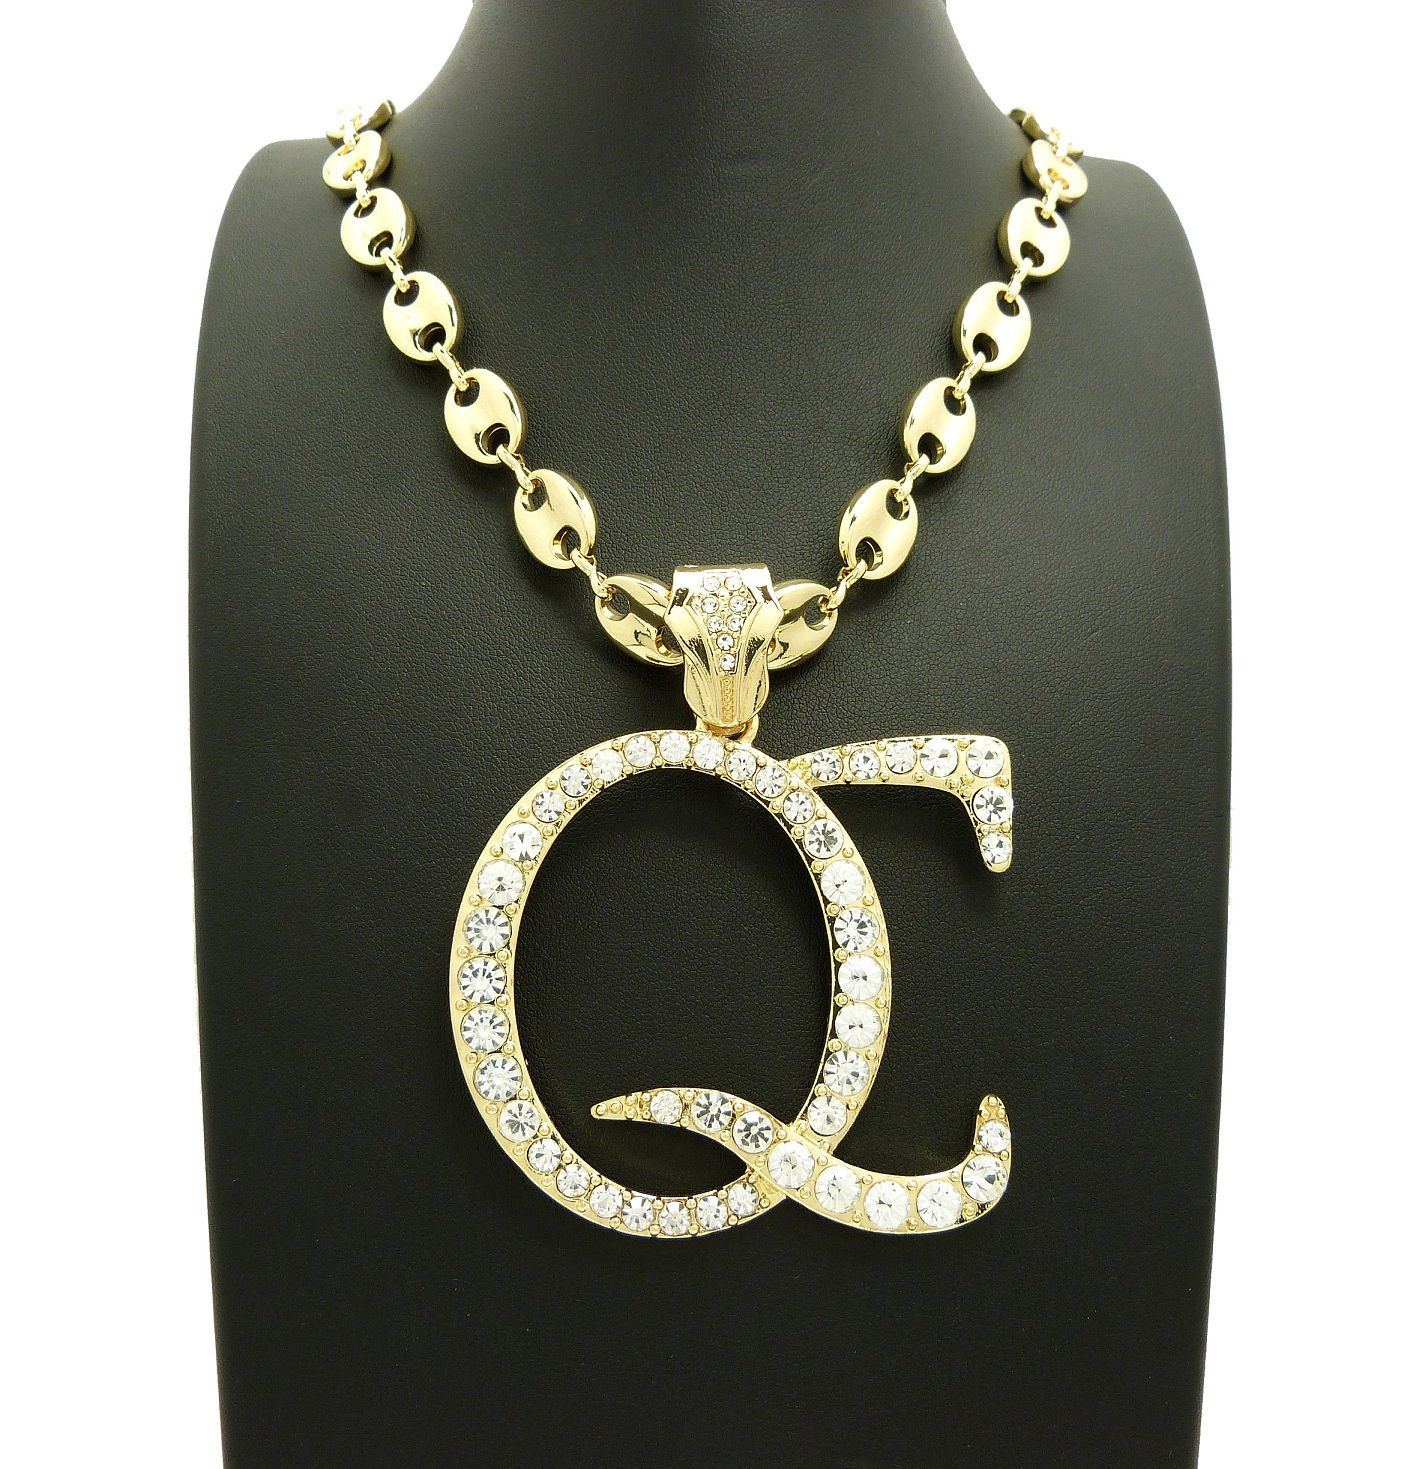 Iced out qc pendant 10mm30 marina link chain hip hop iced out qc pendant 10mm30 marina link chain mozeypictures Gallery